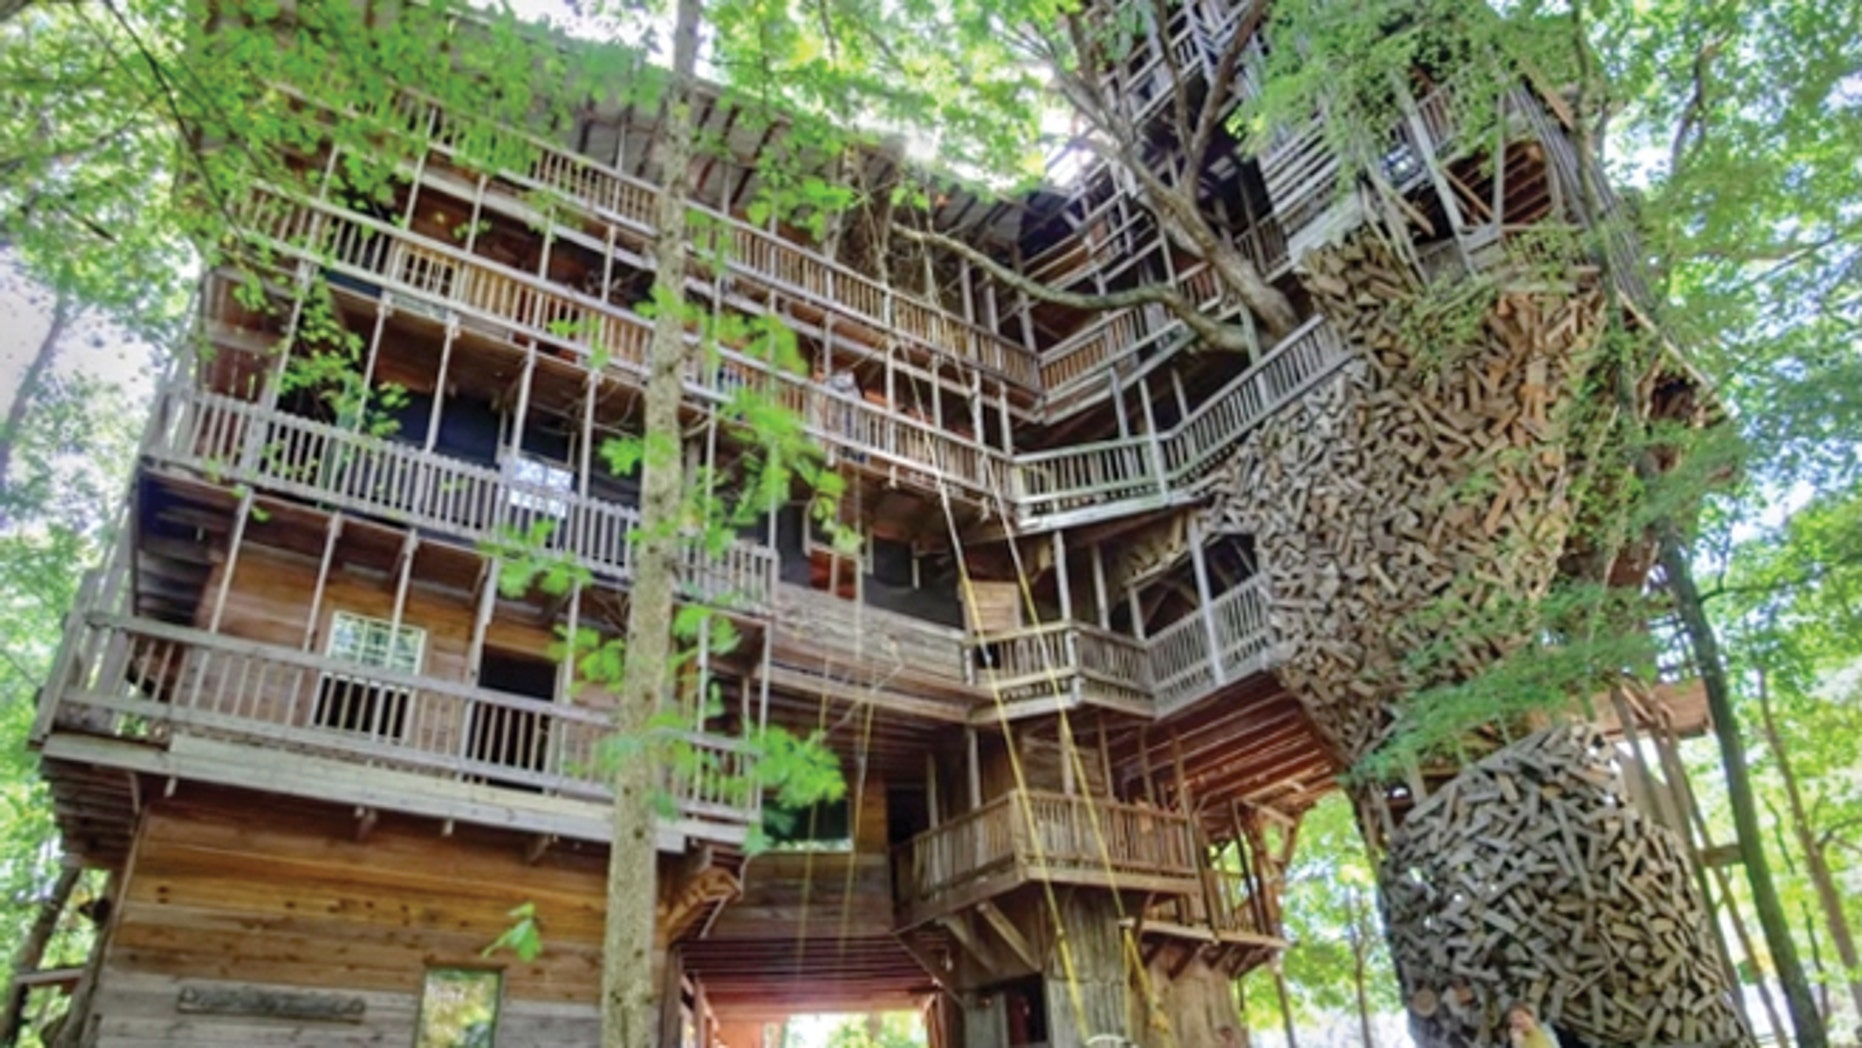 The treehouse stands 97 feet in the air and is built on six load bearing trees.